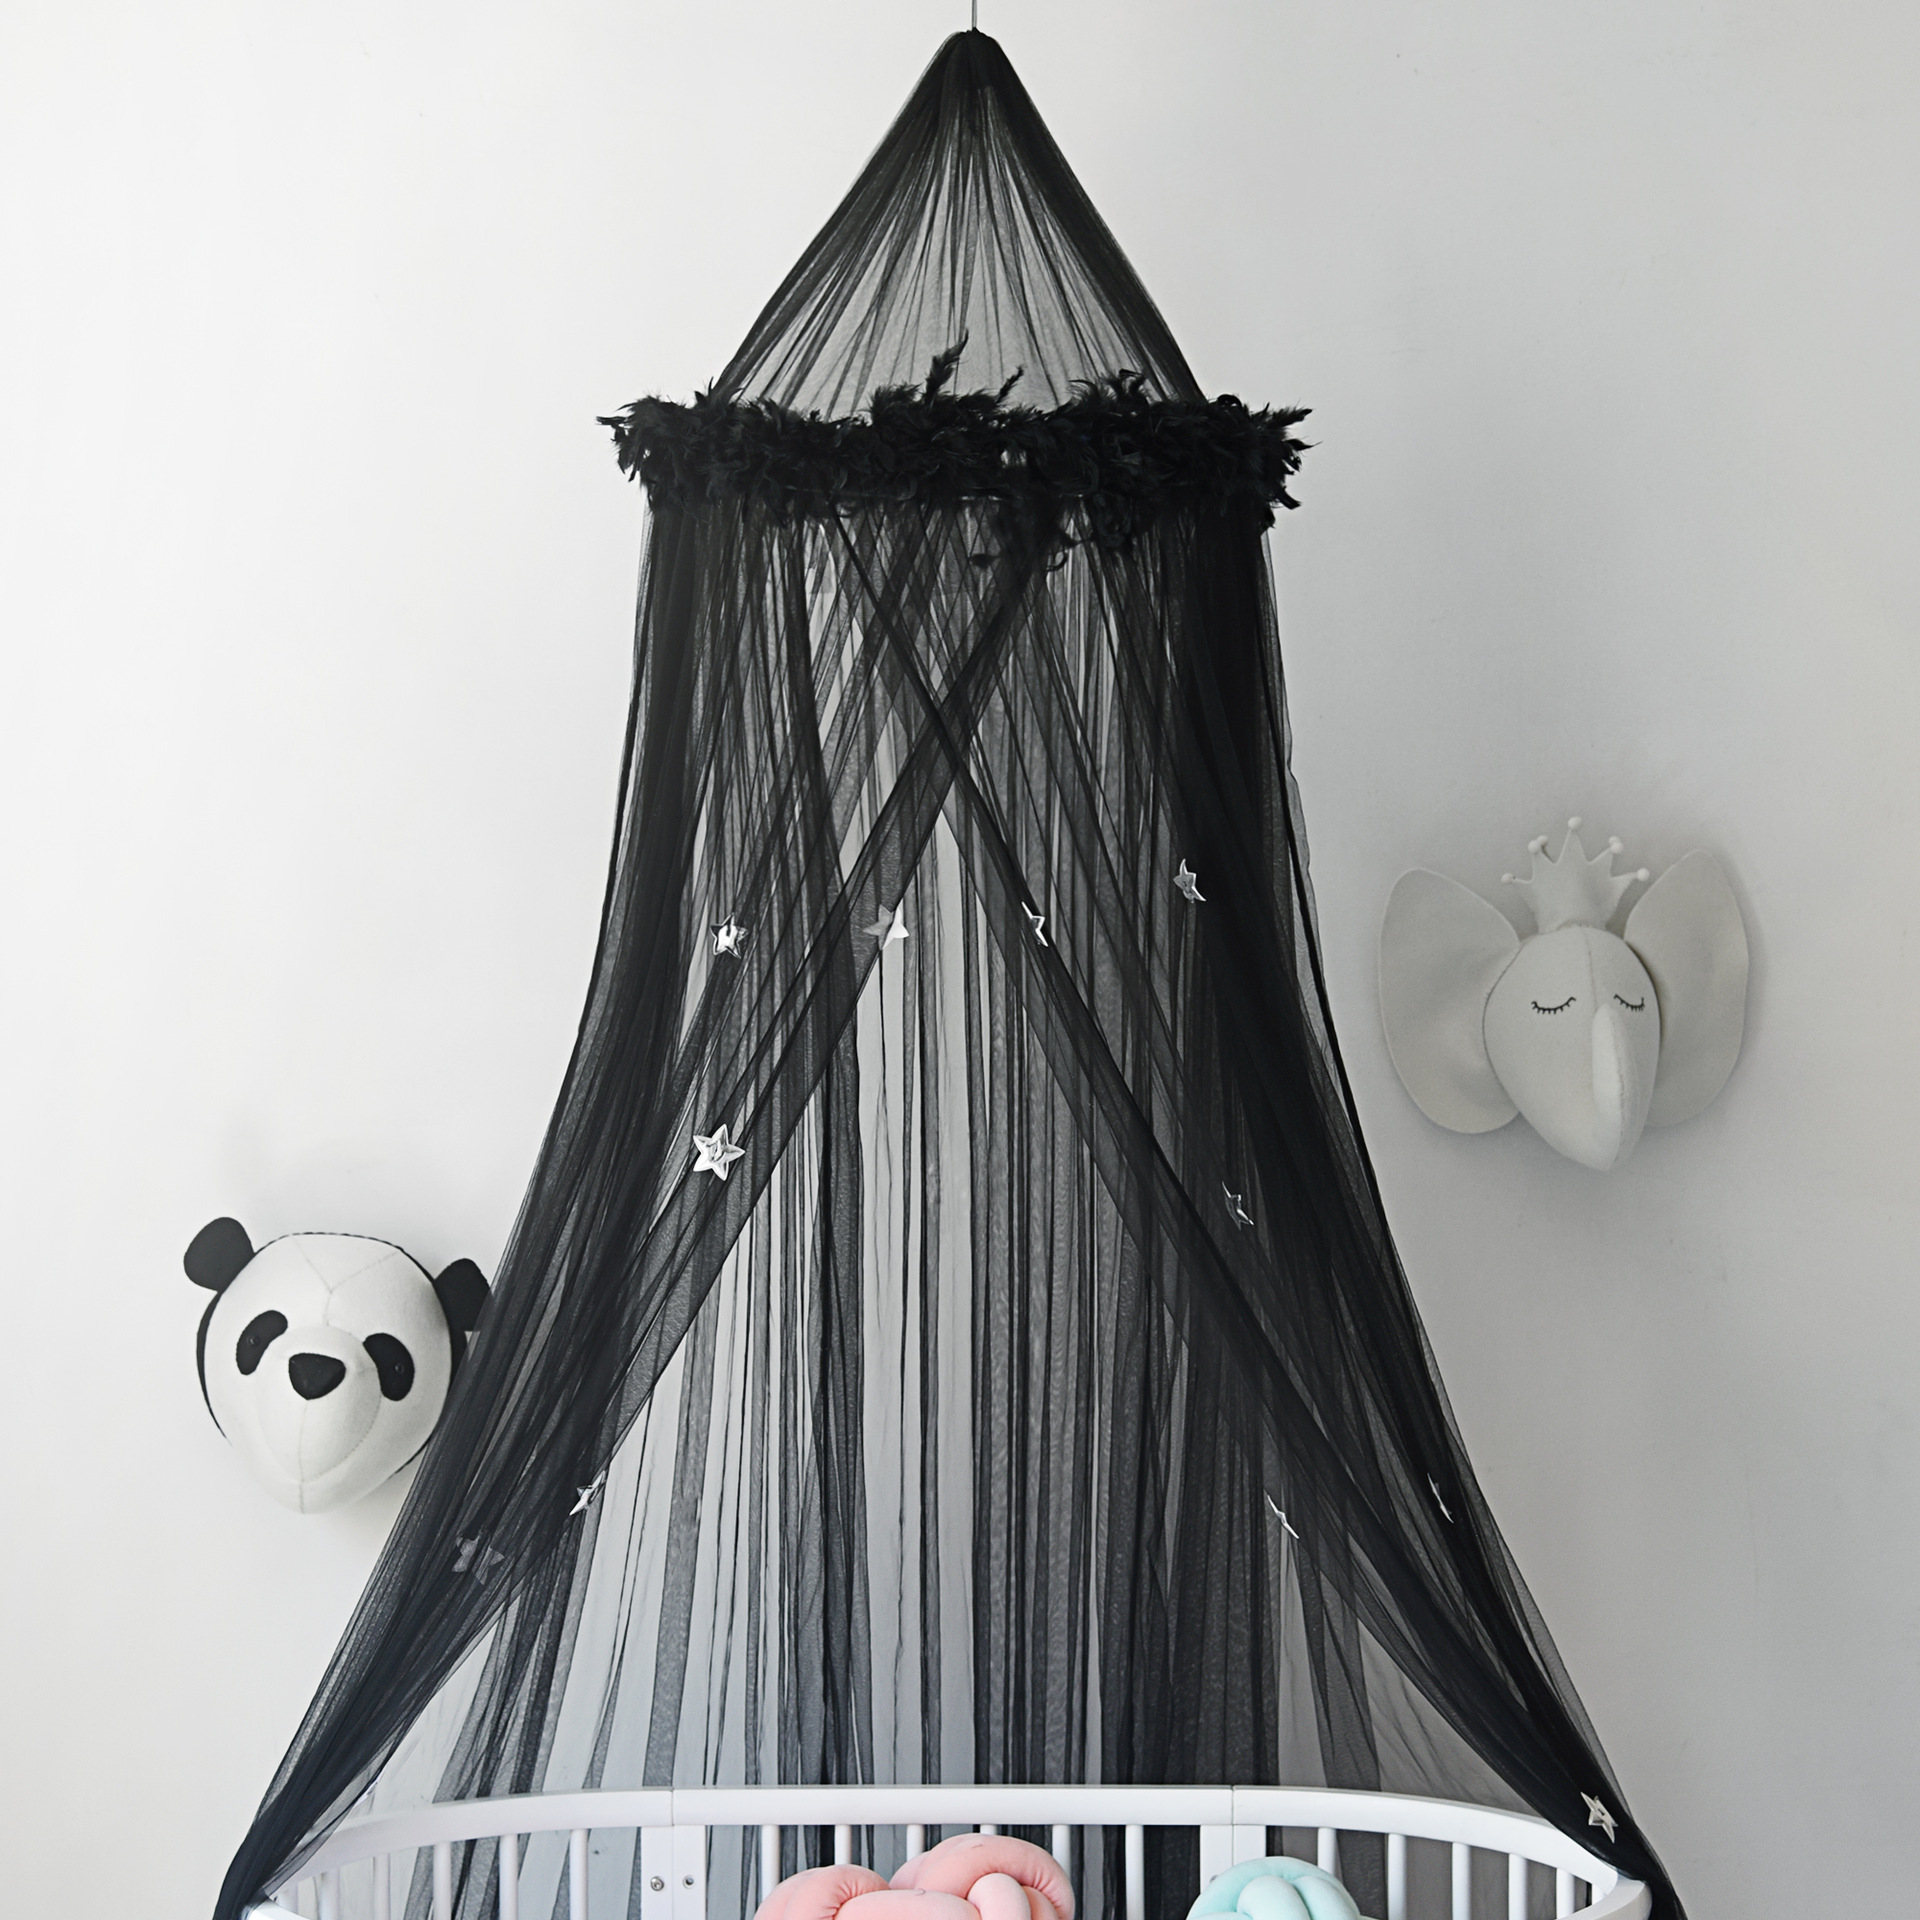 Bed canopy with light luxury ceiling mosquito net for children room dome feather stars decoration mosquito net